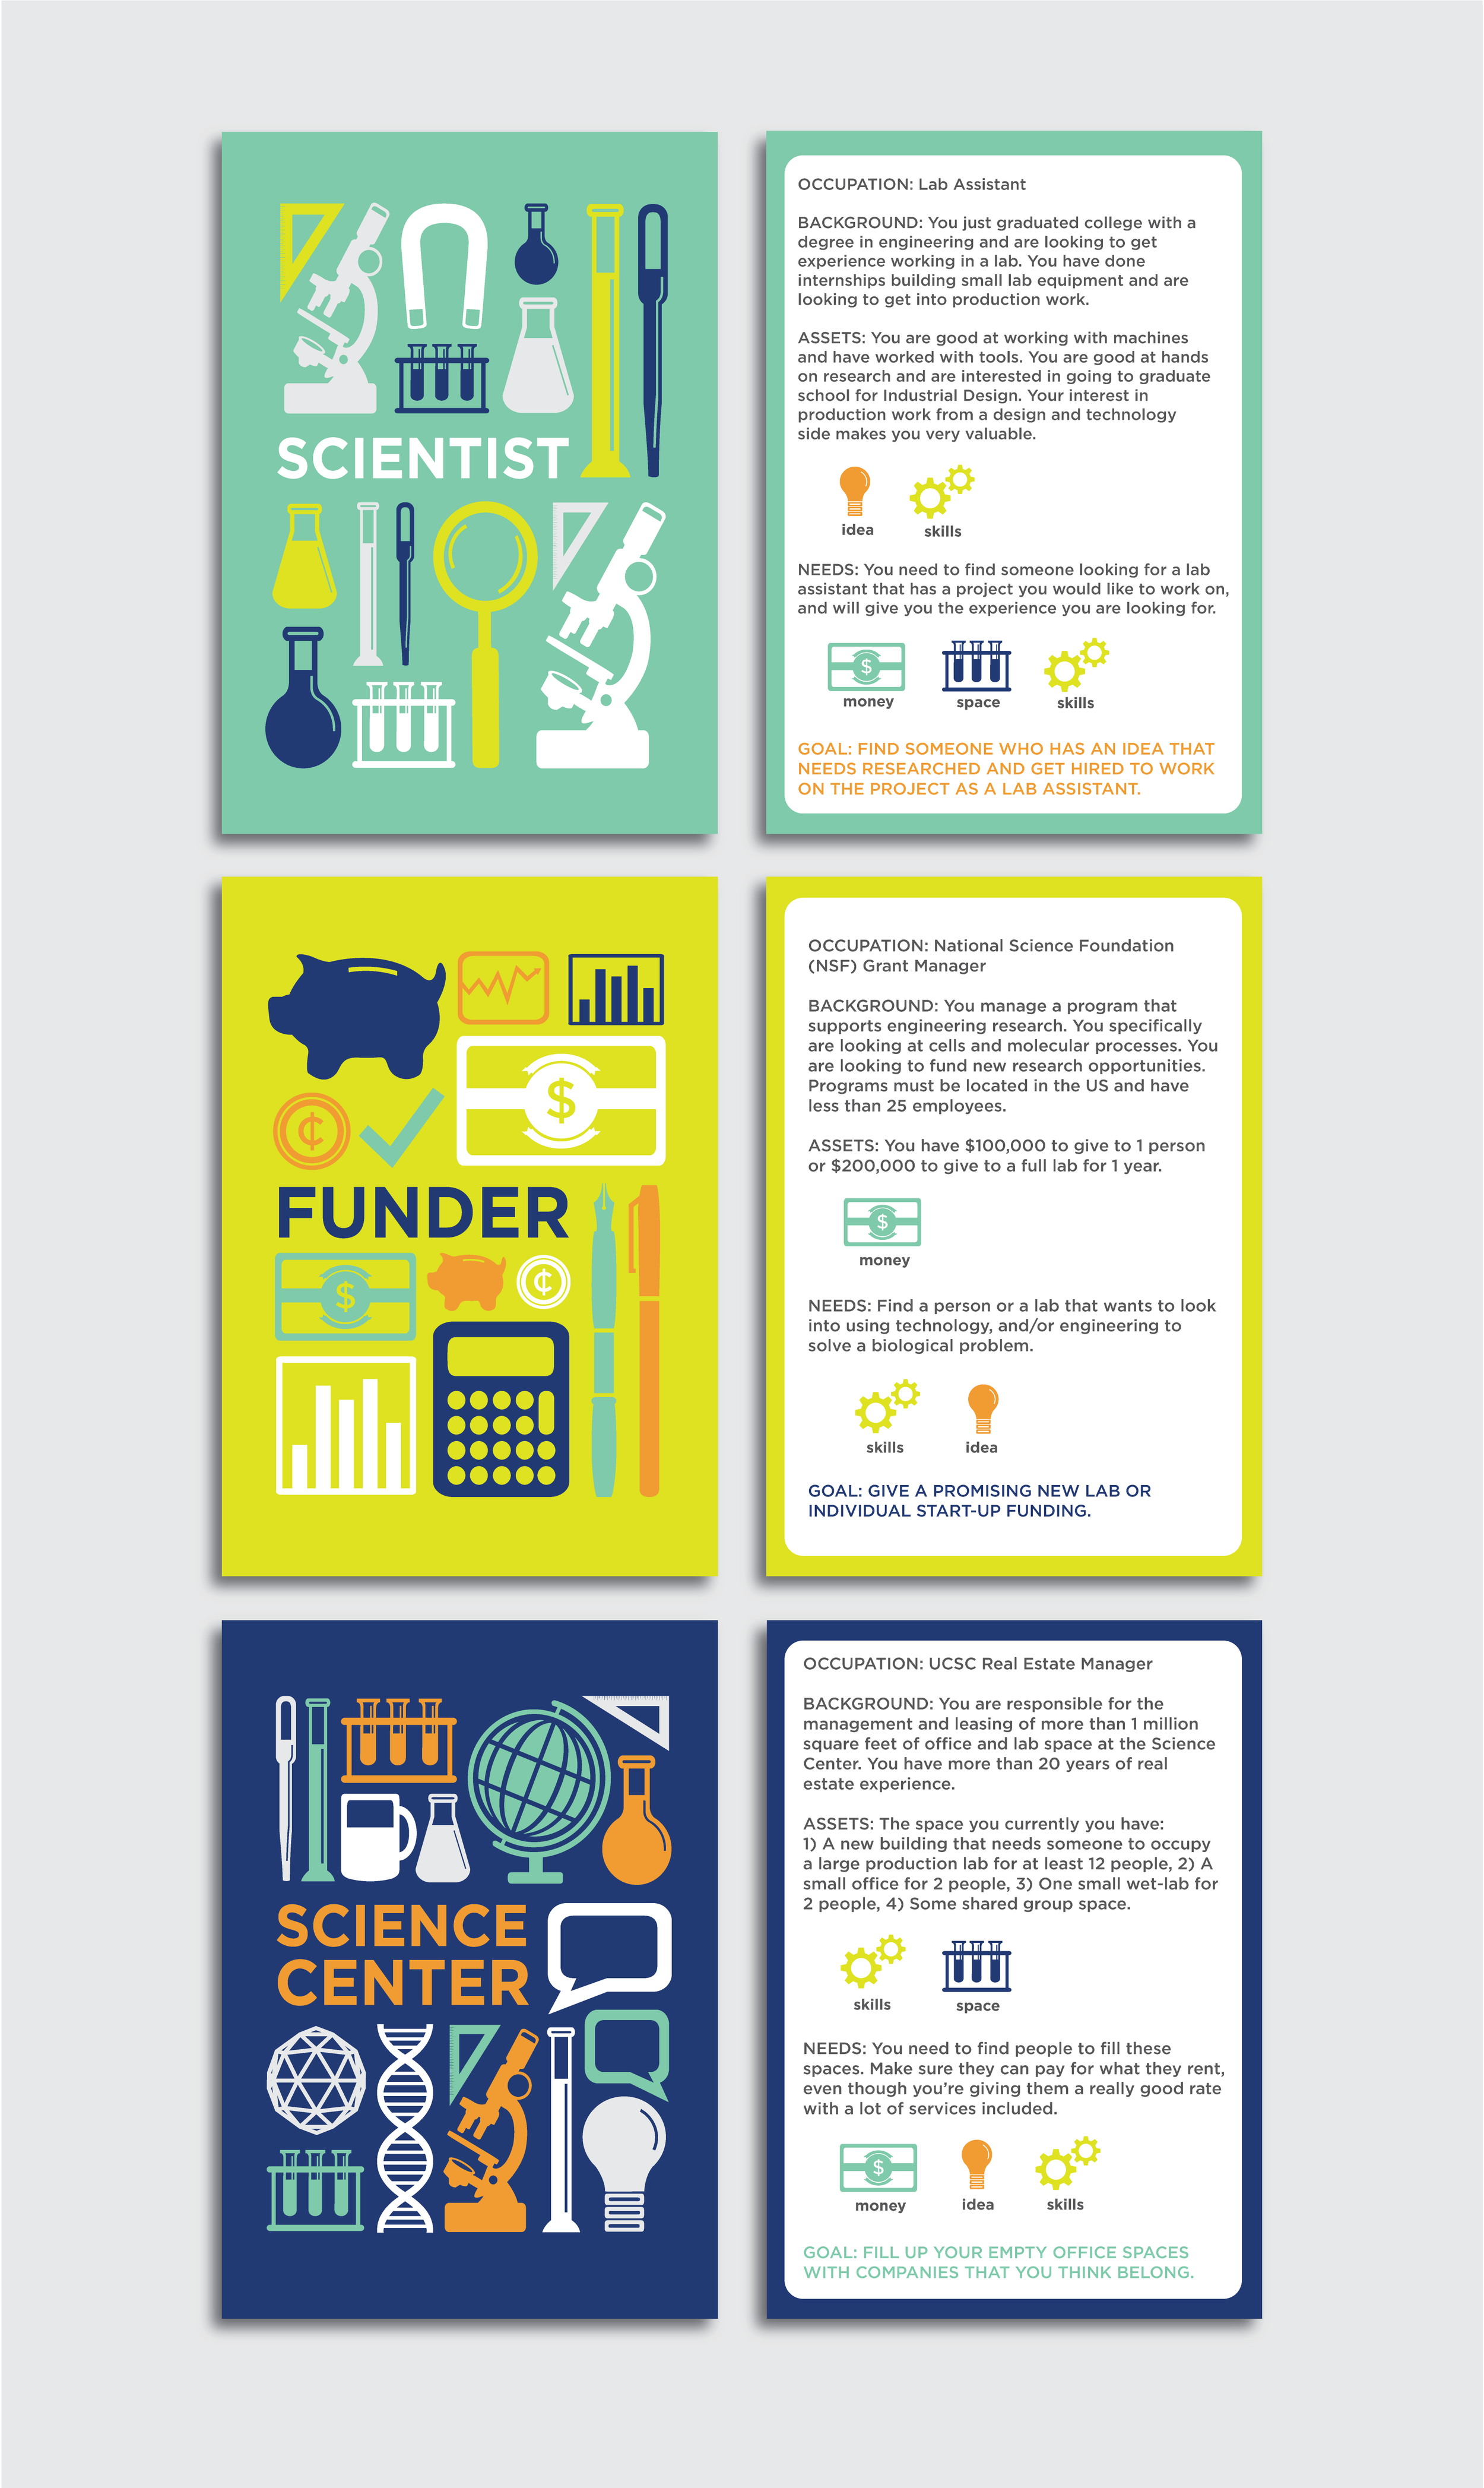 sciencecenterstartupgame_new-01.png